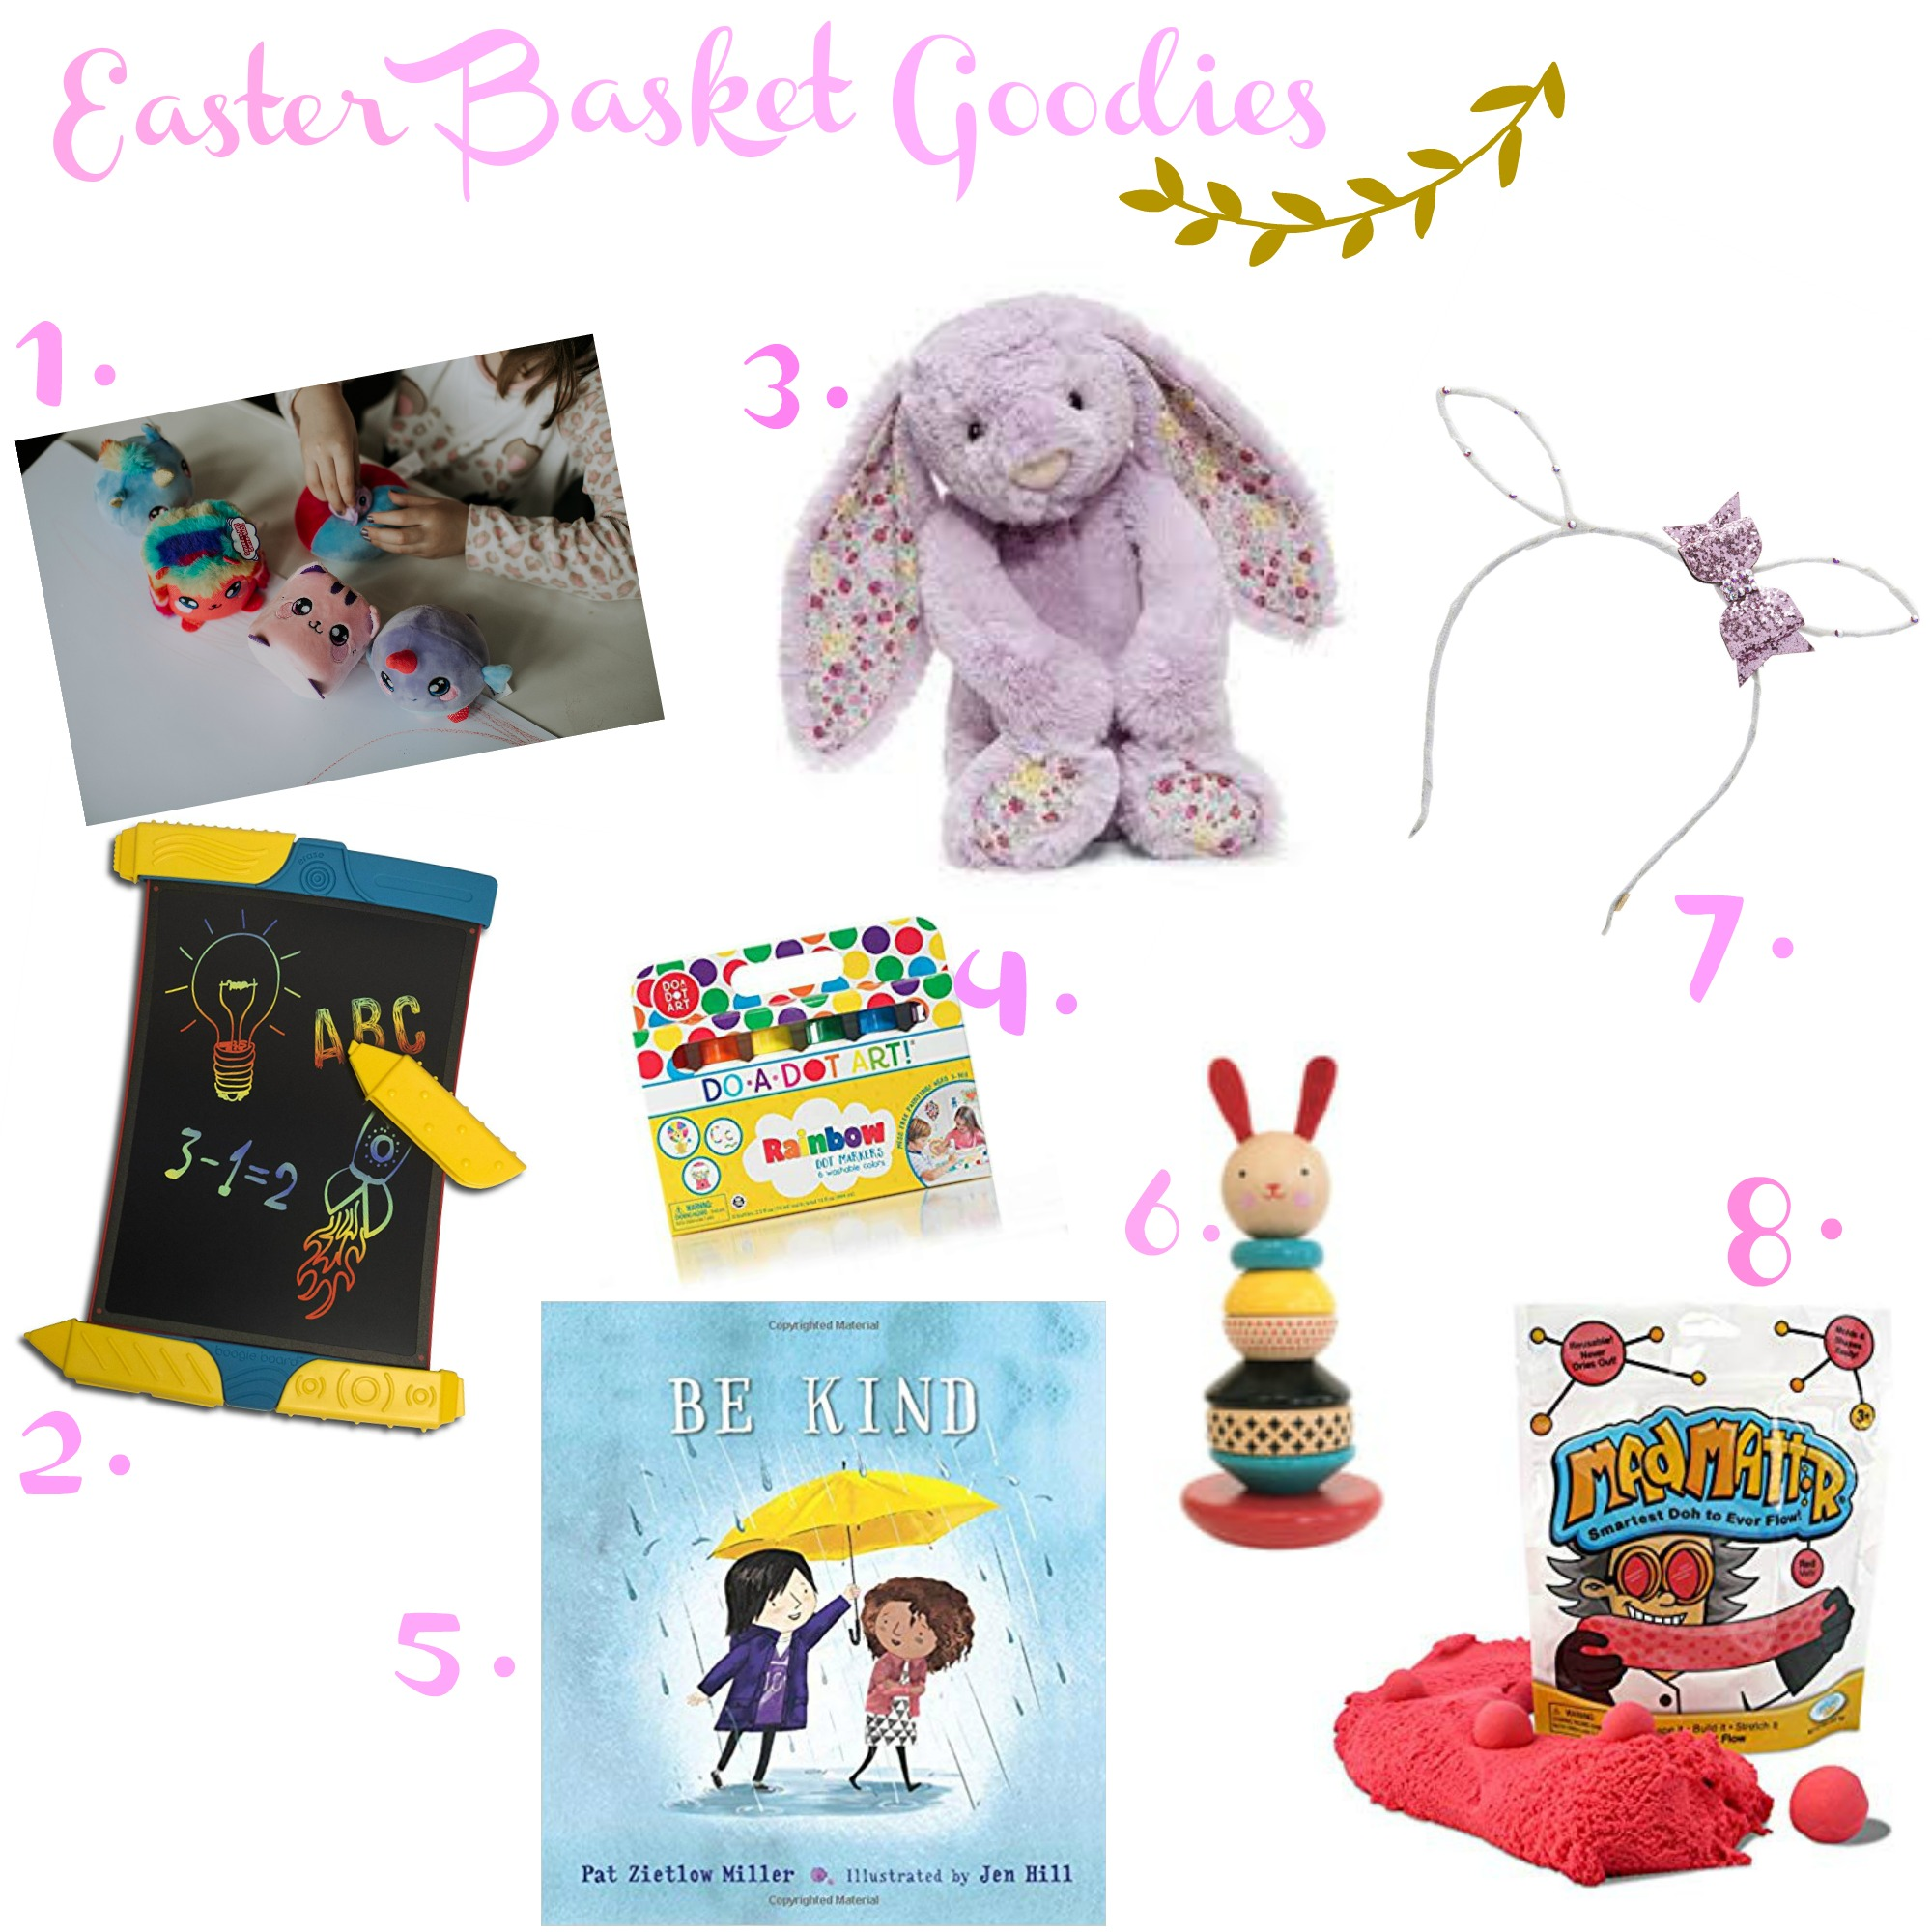 Easter Basket Collage.jpg